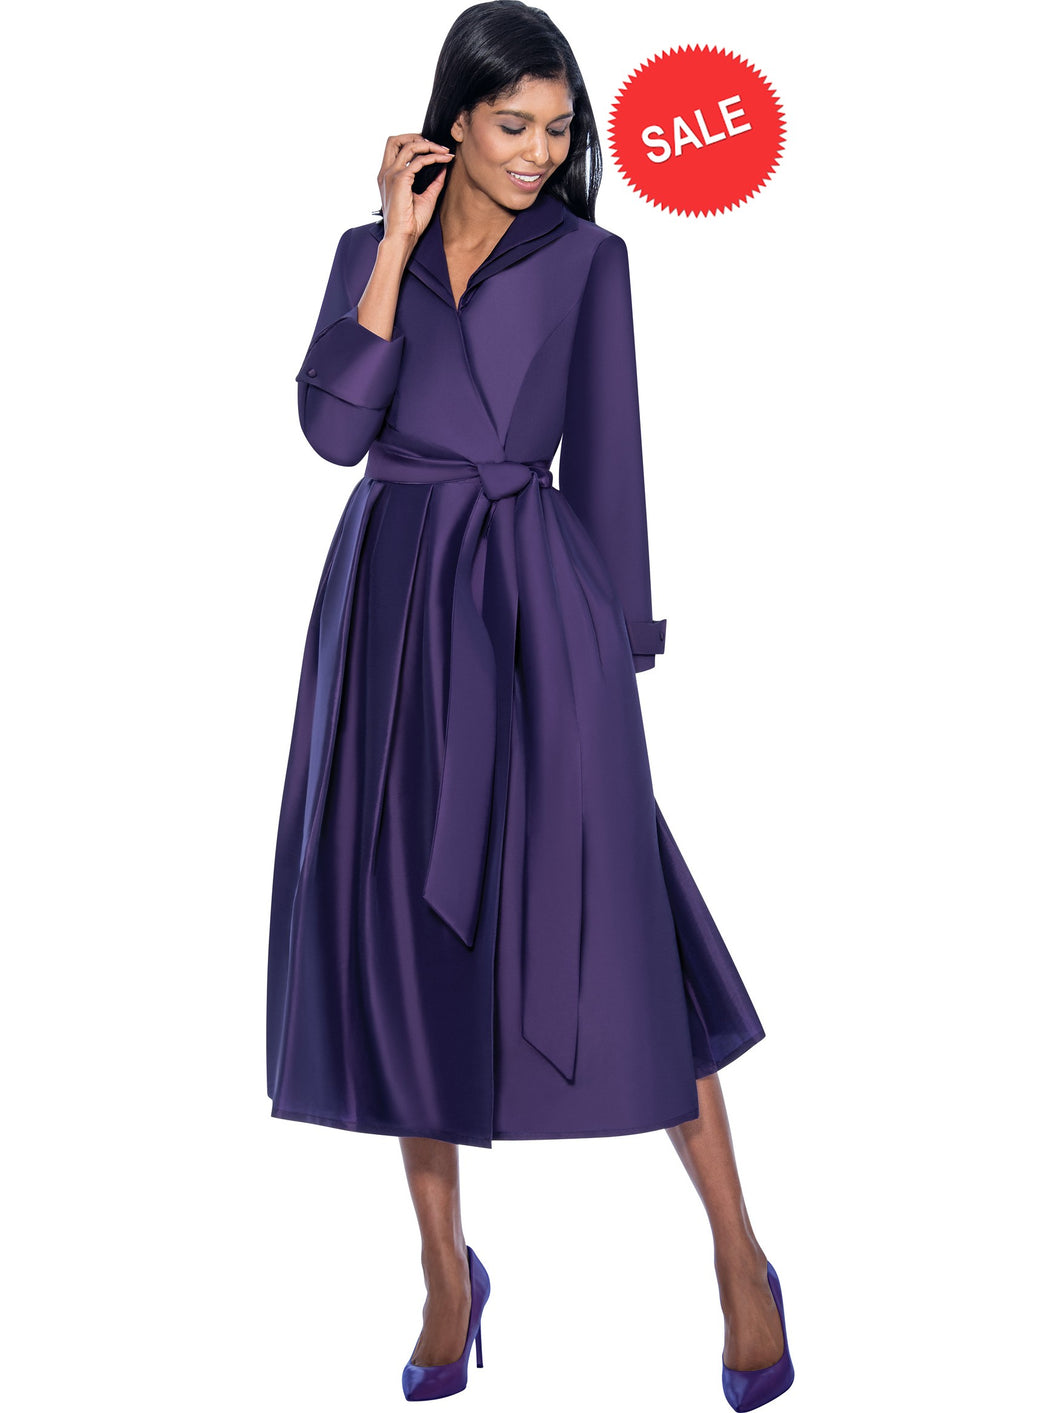 DN5371 Purple Wrap Dress, Usher Dress, Church, Choir, Group Uniform